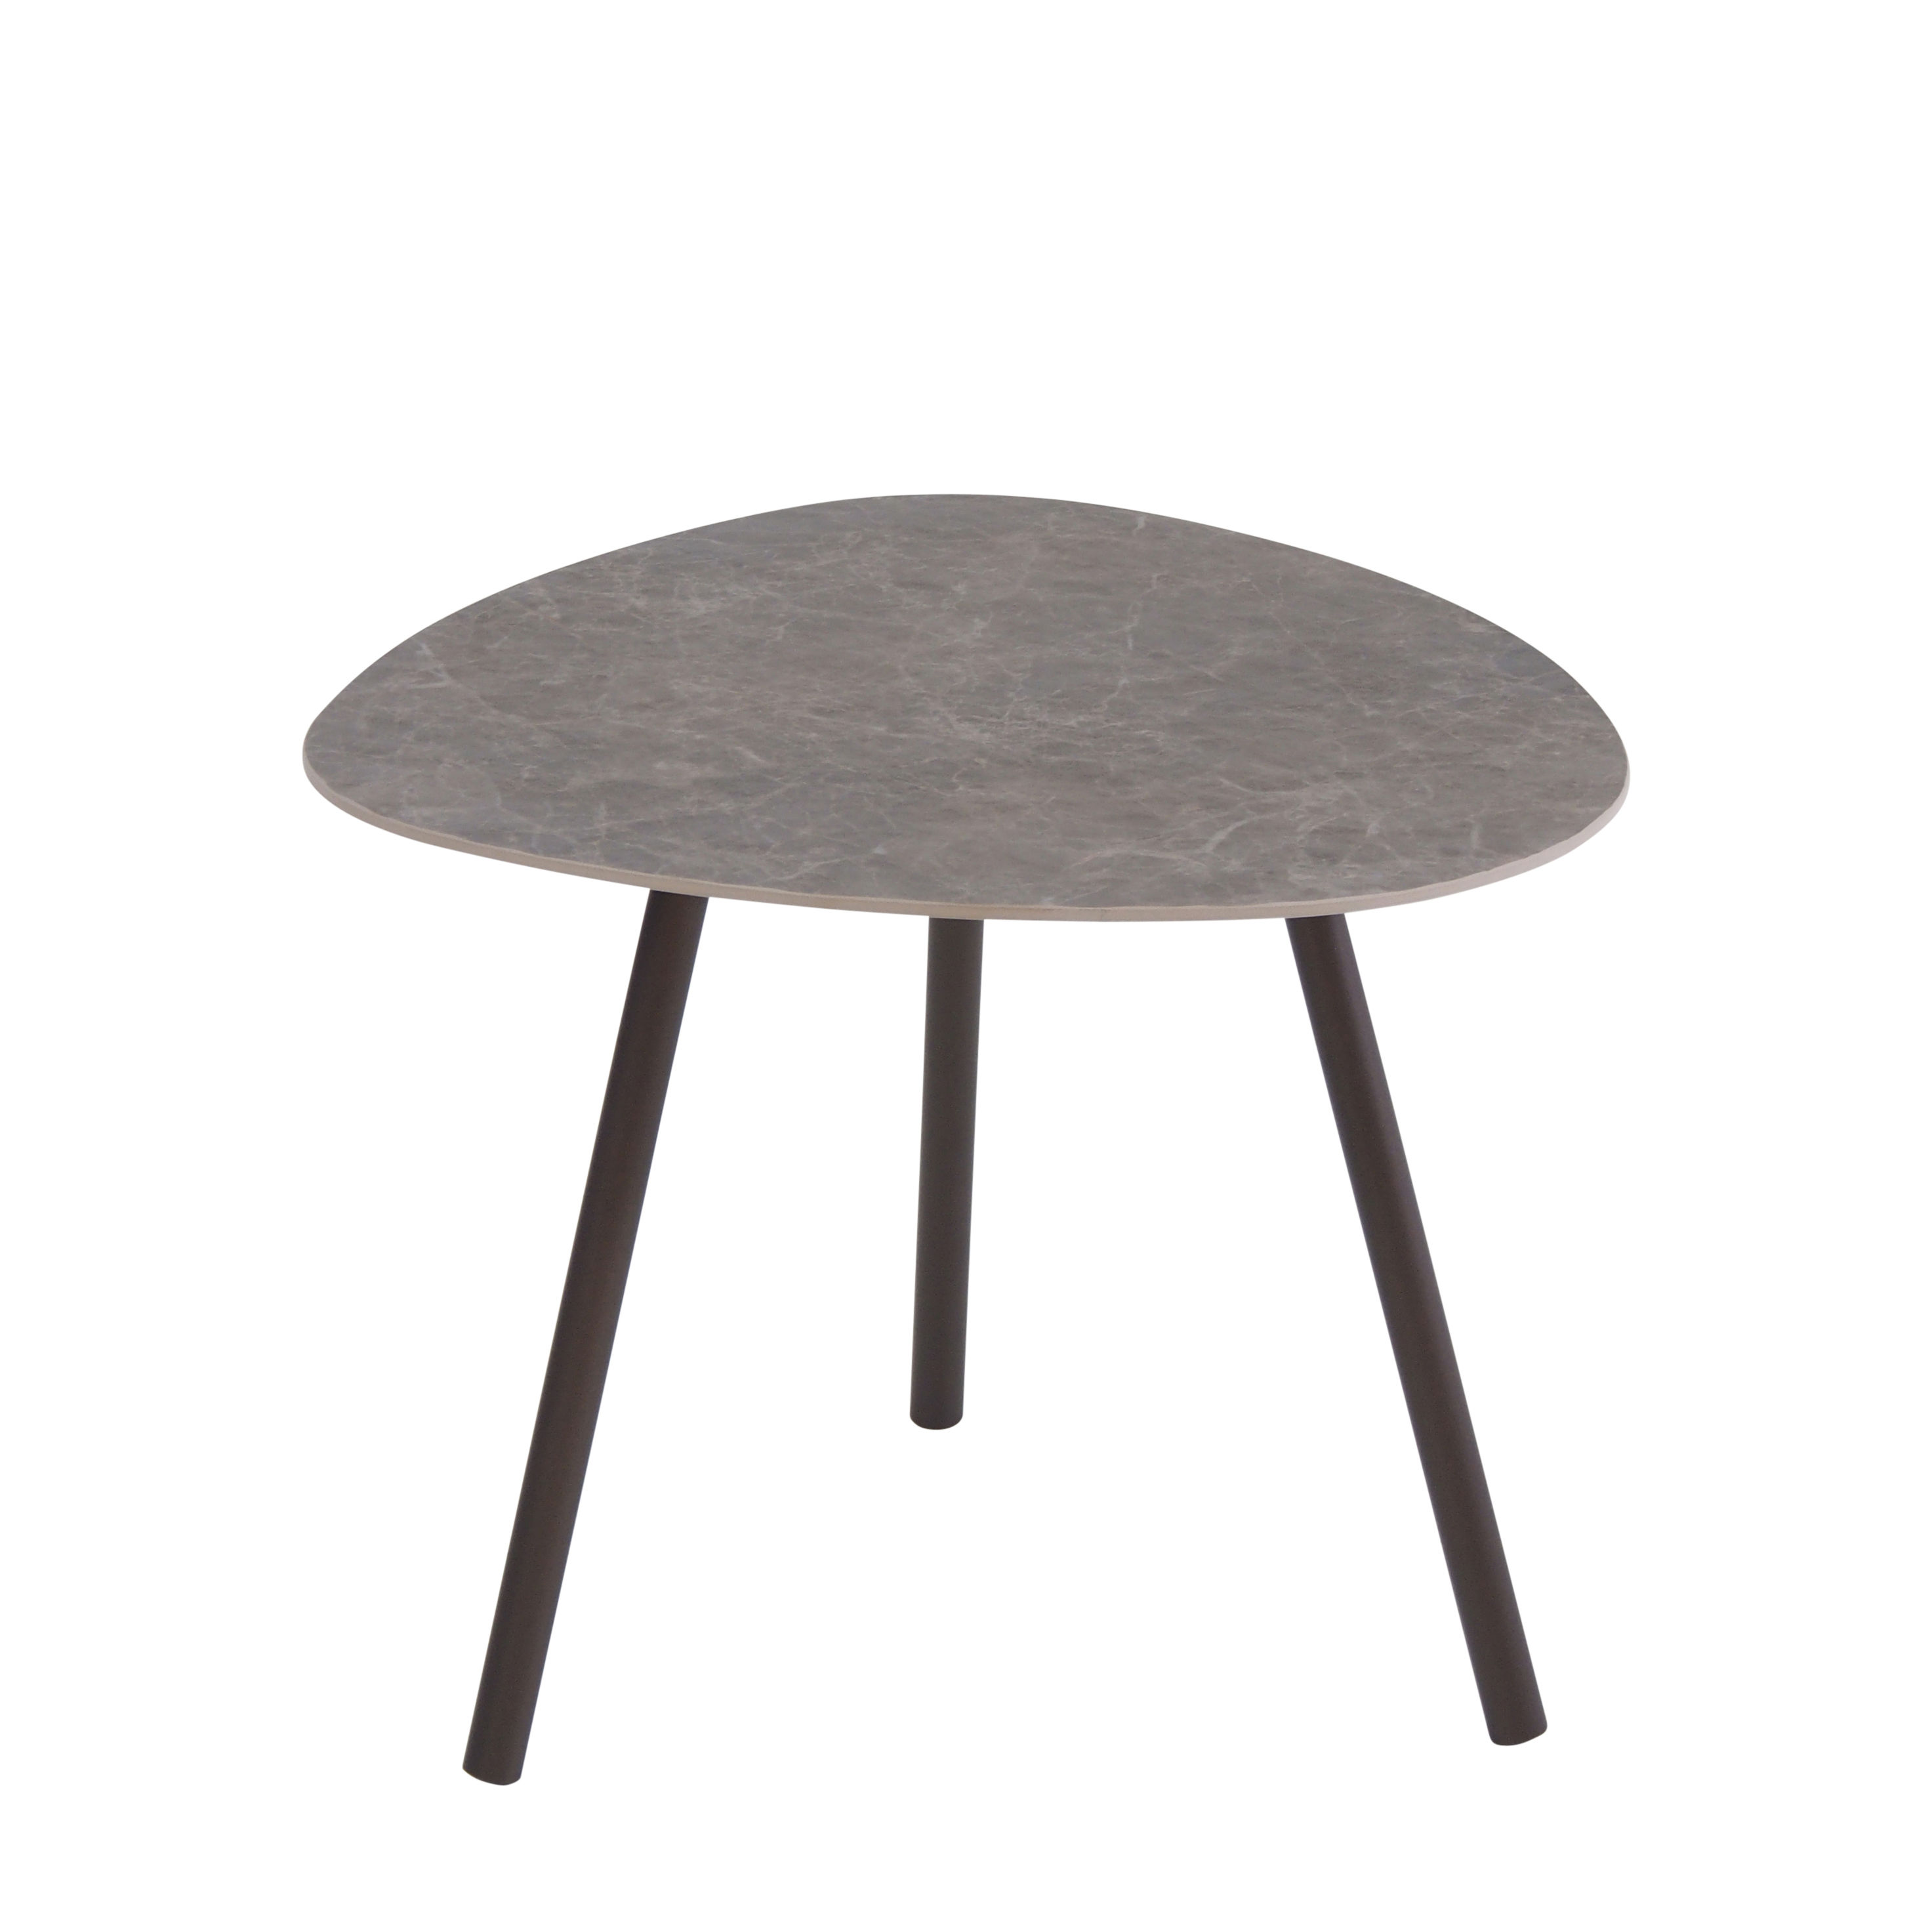 Furniture - Coffee Tables - Terramare Coffee table - Porcelain stoneware - 48 x 48 cm by Emu - Indian brown / Emperador porcelain stoneware - Stoneware, Varnished aluminium